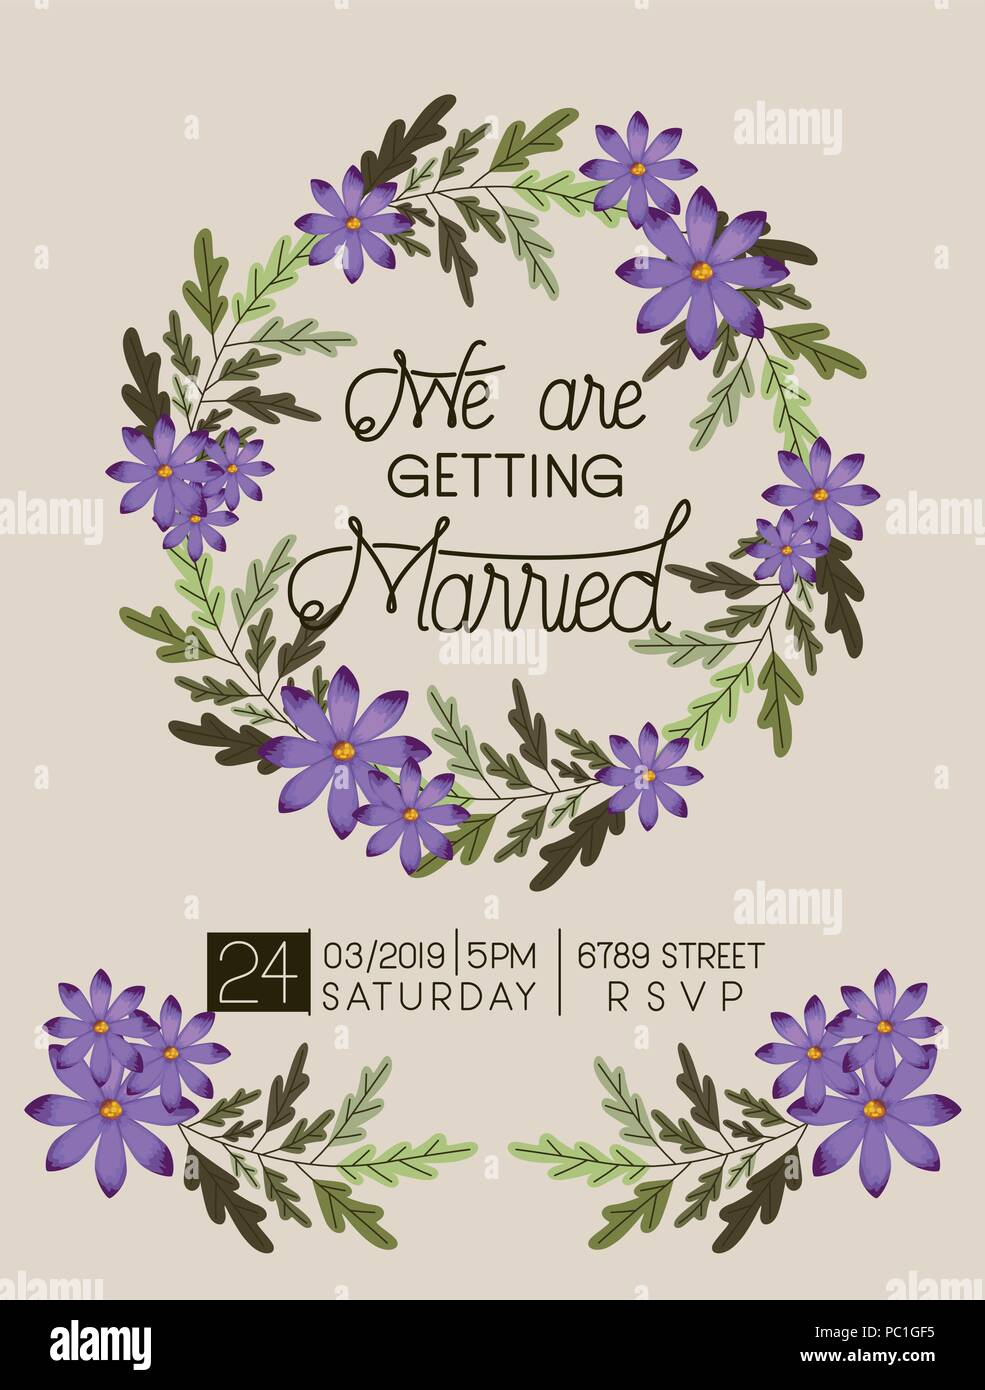 wedding invitation card with floral crown Stock Vector Art ...